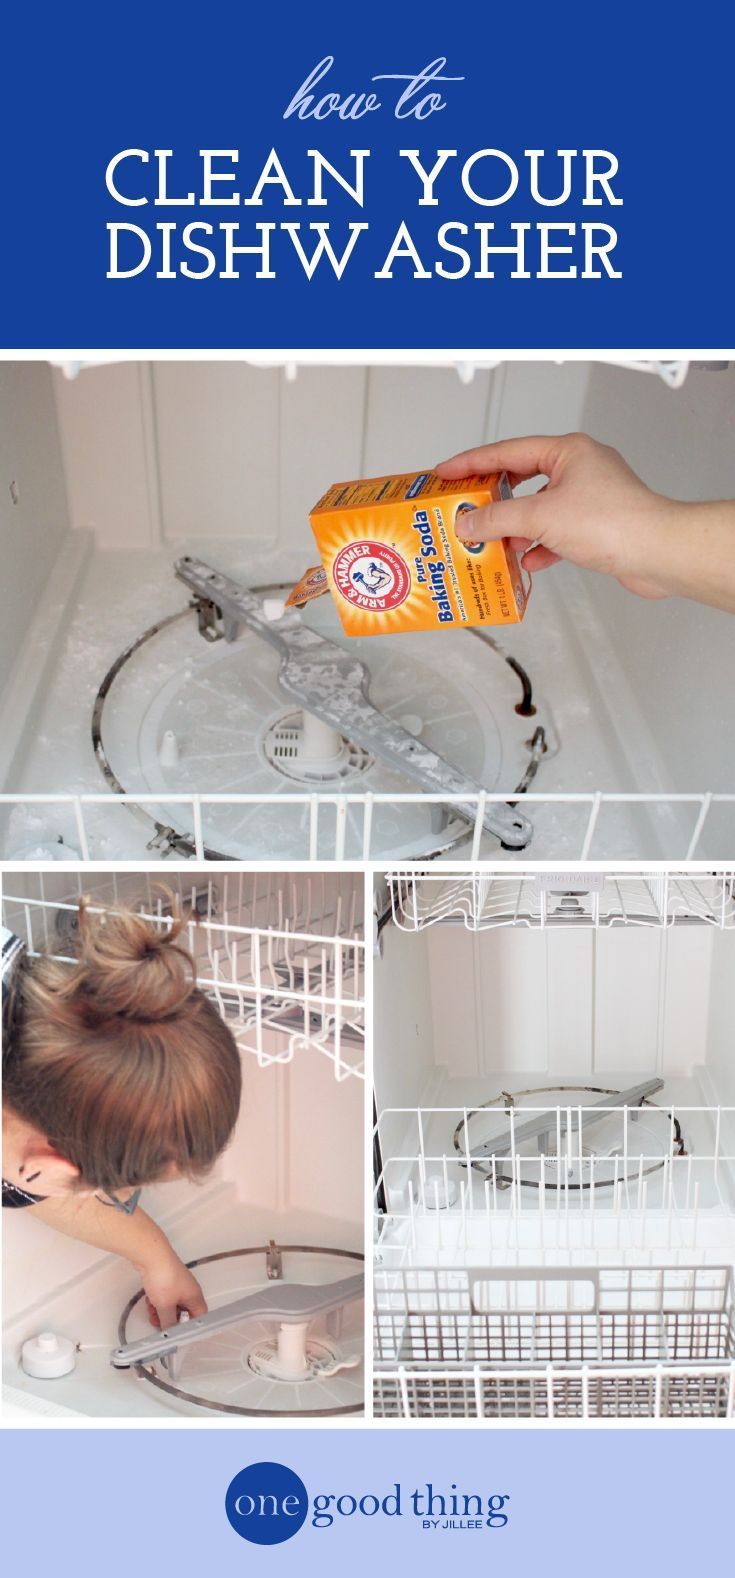 Learn how to clean your dishwasher! This process eliminate problems like standing water and unpleasant smells, and increase its overall efficiency.